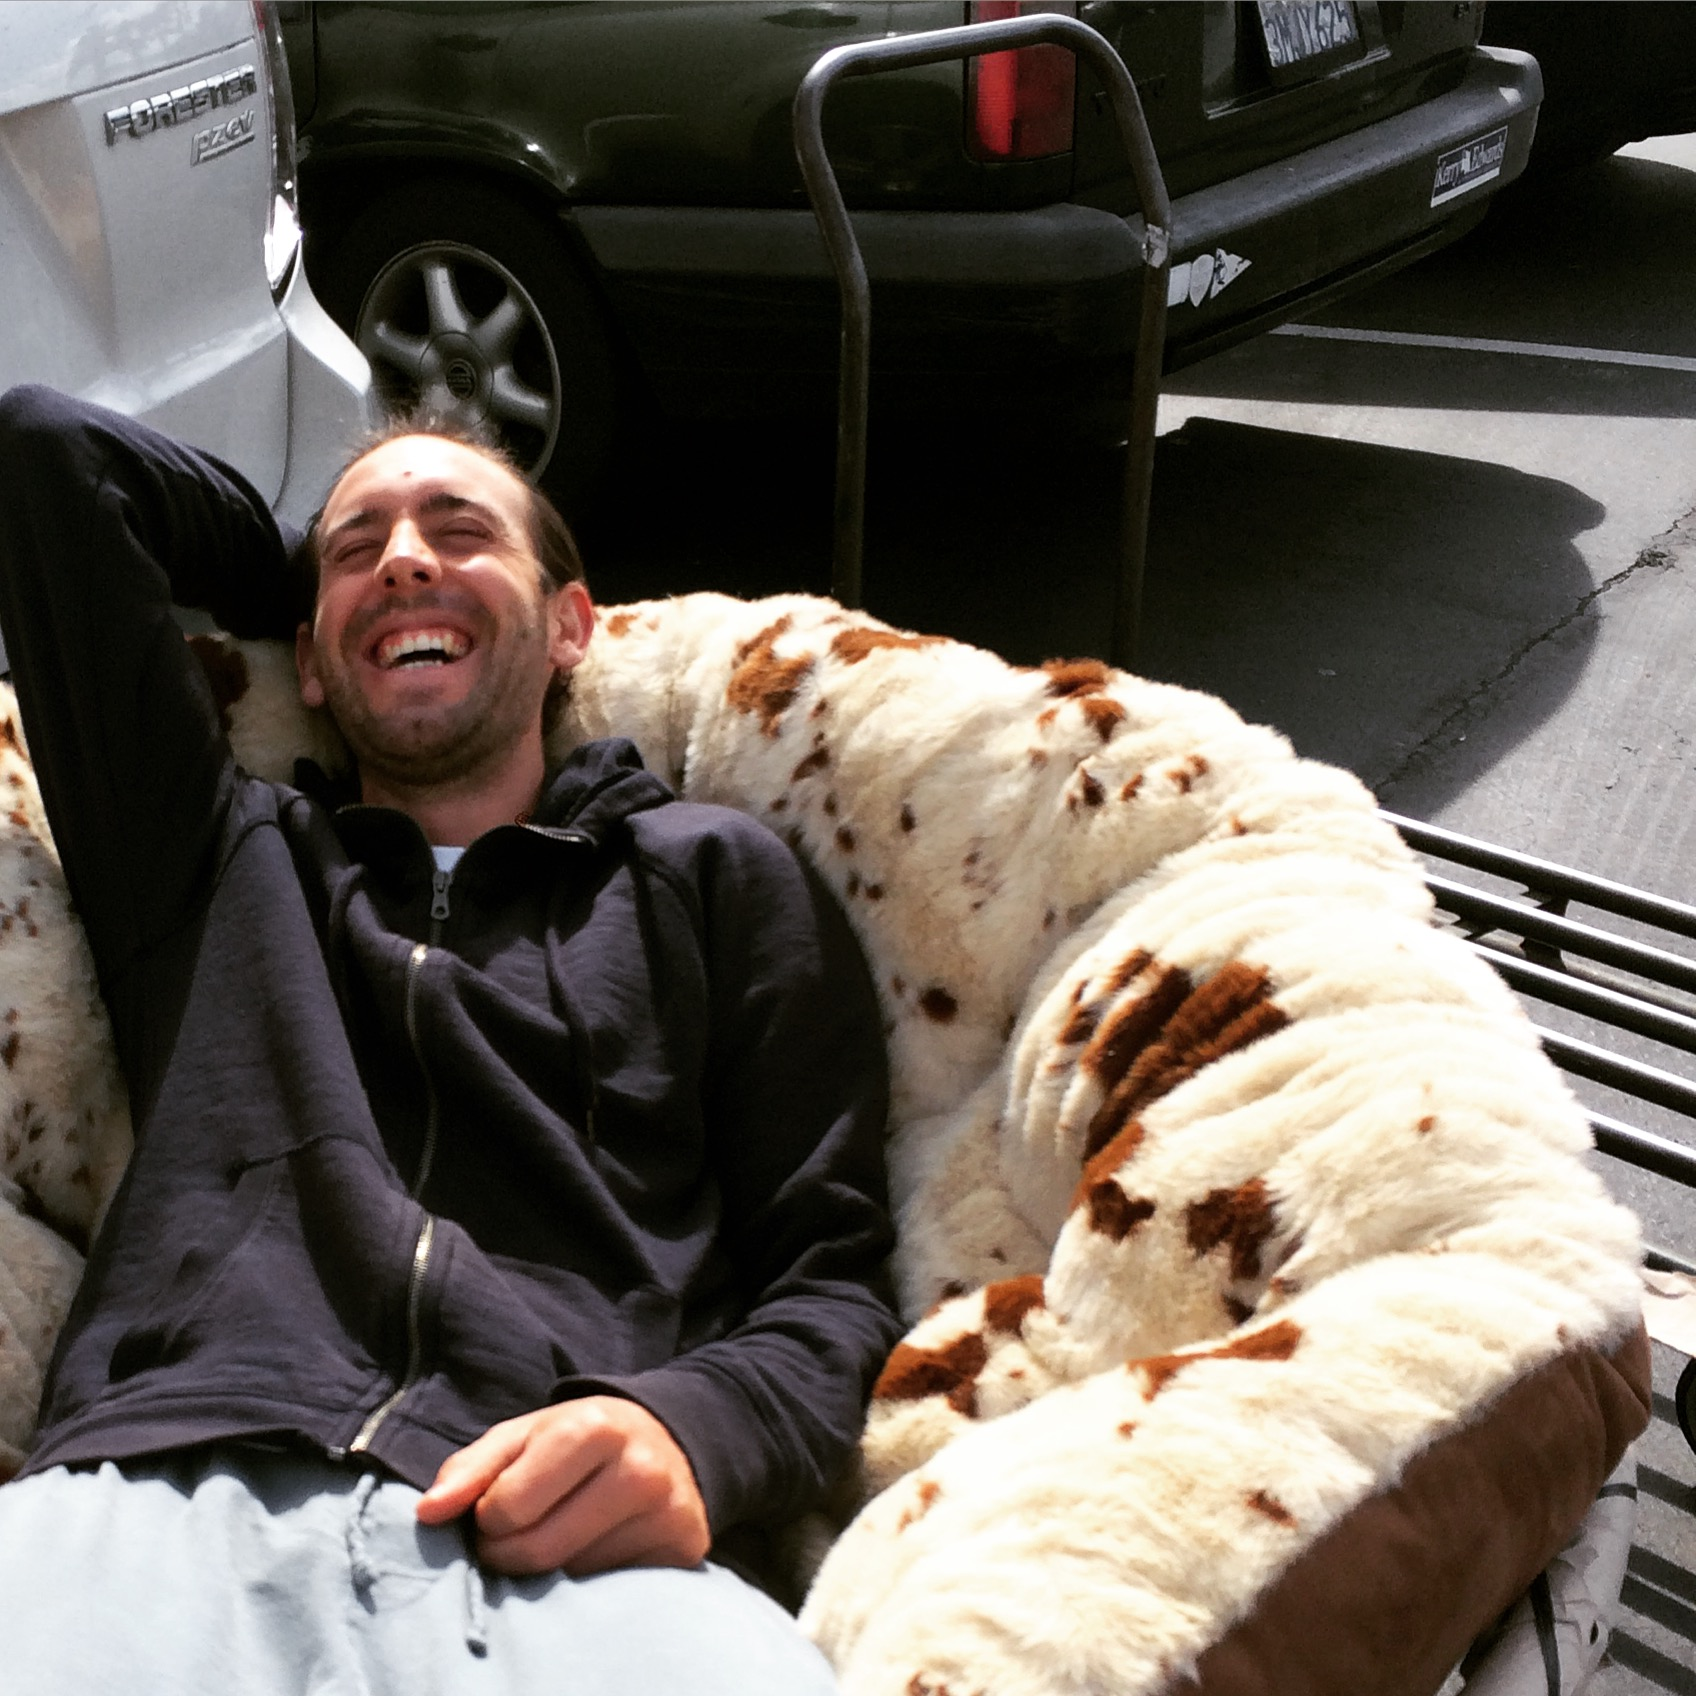 Carl cracking up in the parking lot of World Market as he vetoes my human dog bed purchase :)